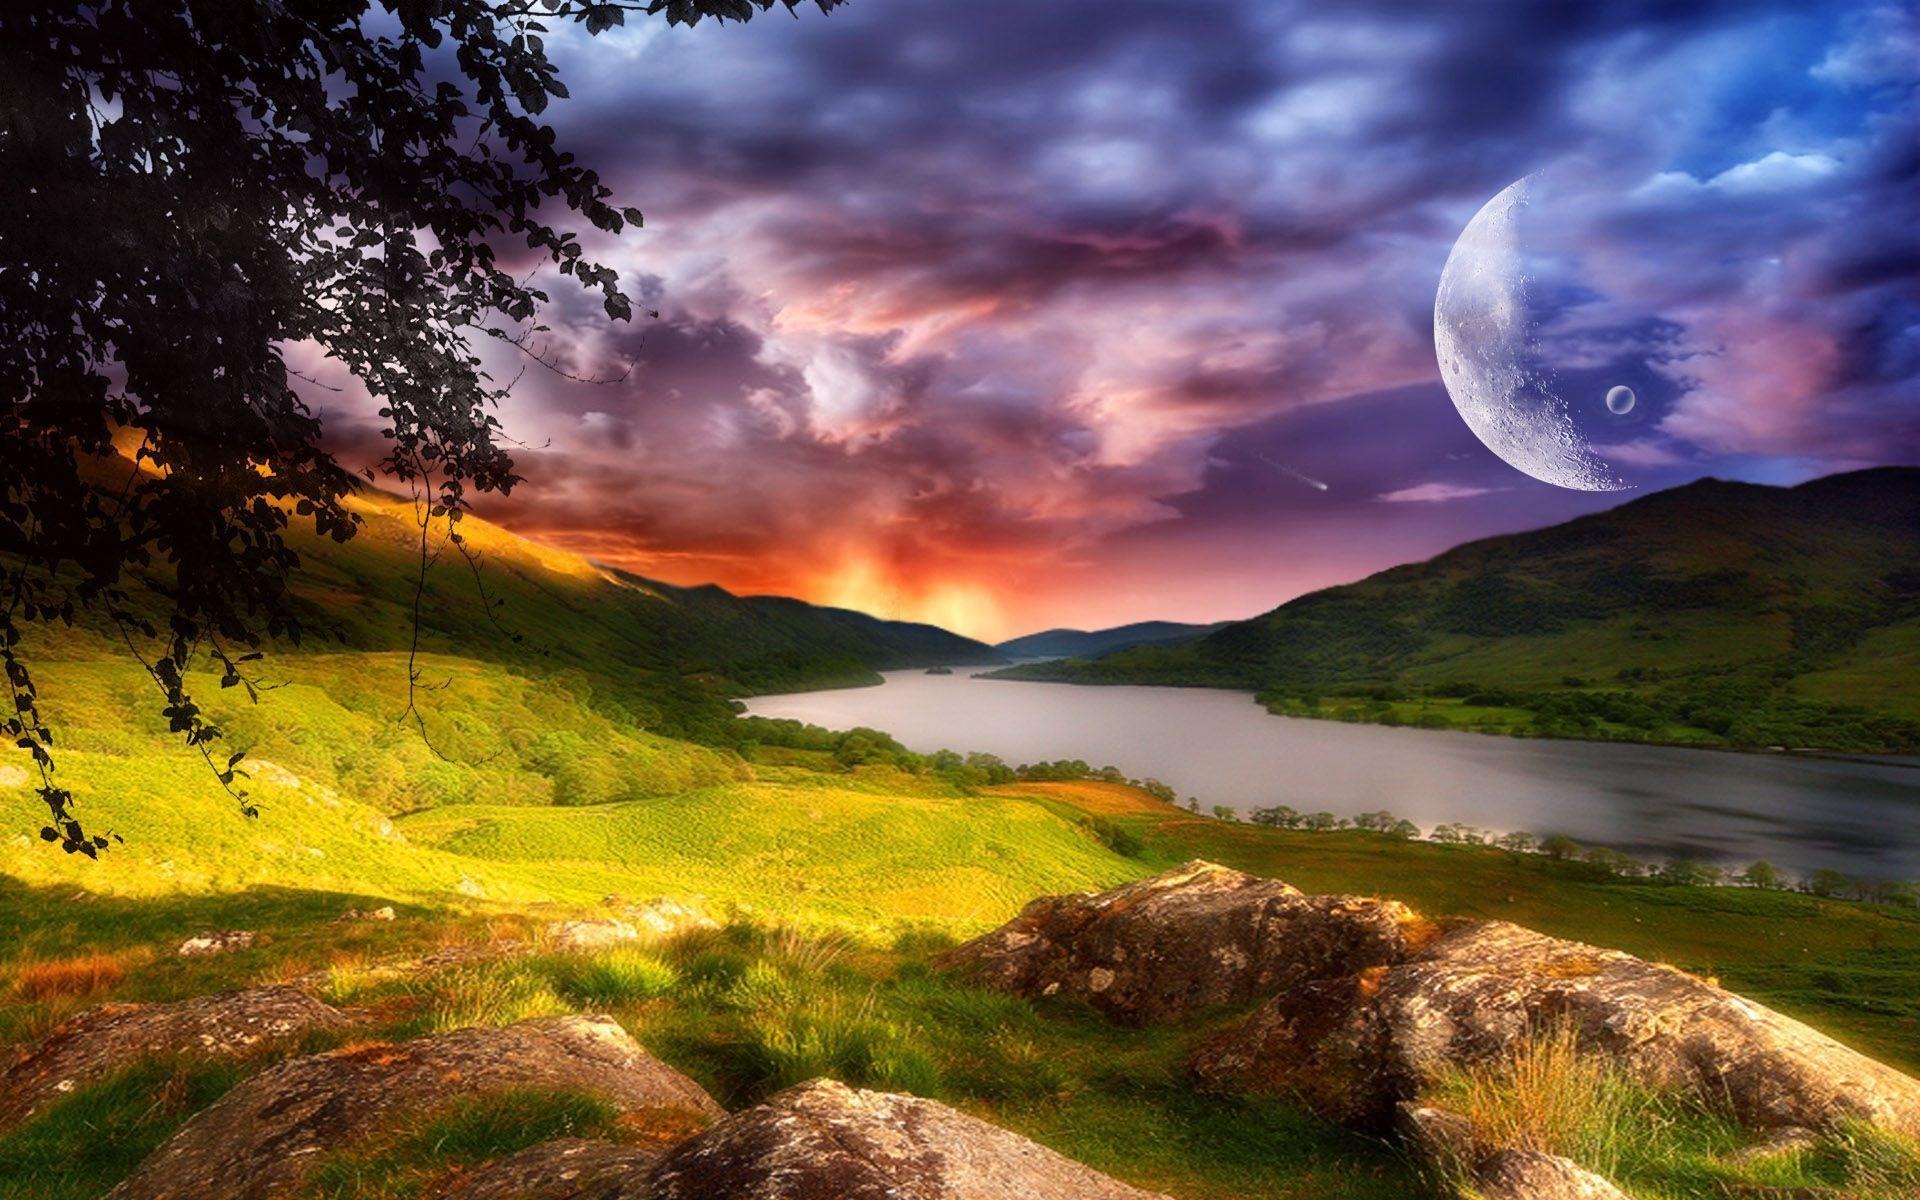 Fantasy Landscape Desktop Backgrounds Widescreen Wallpapers